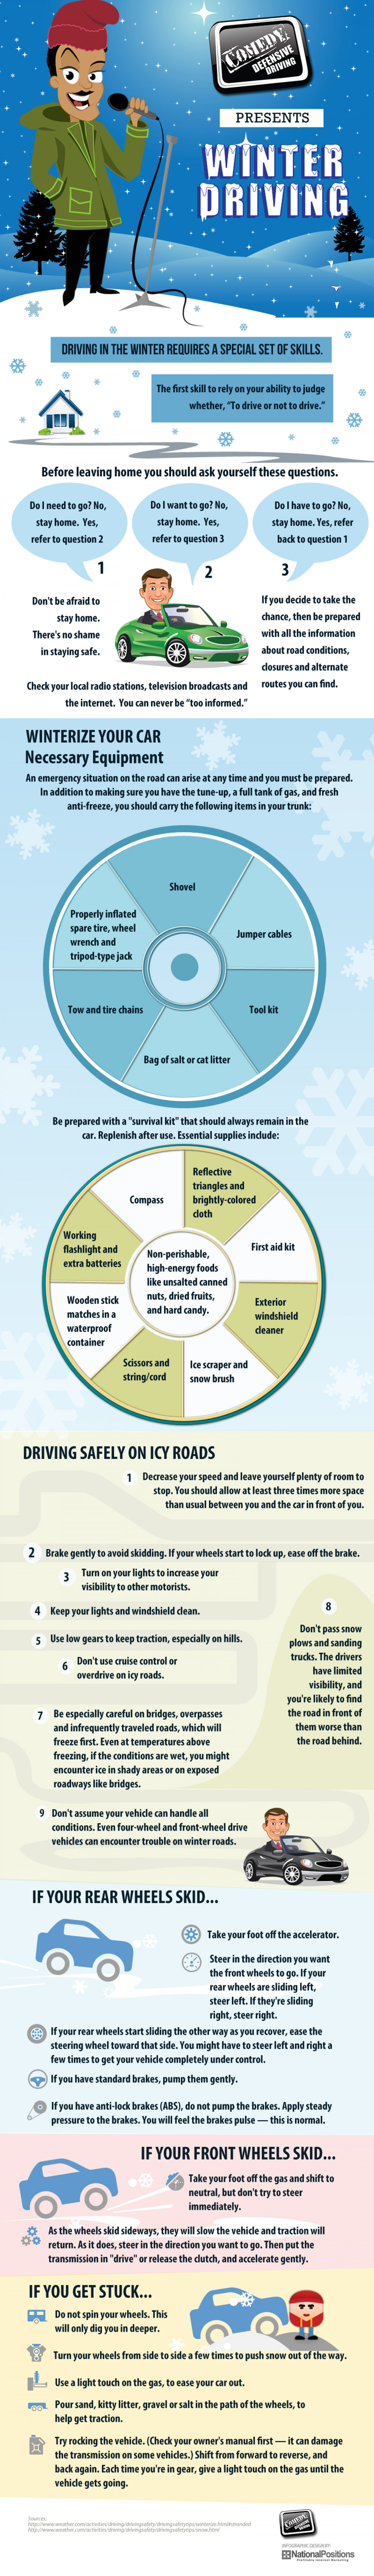 A Guide To Winter Driving Infographic